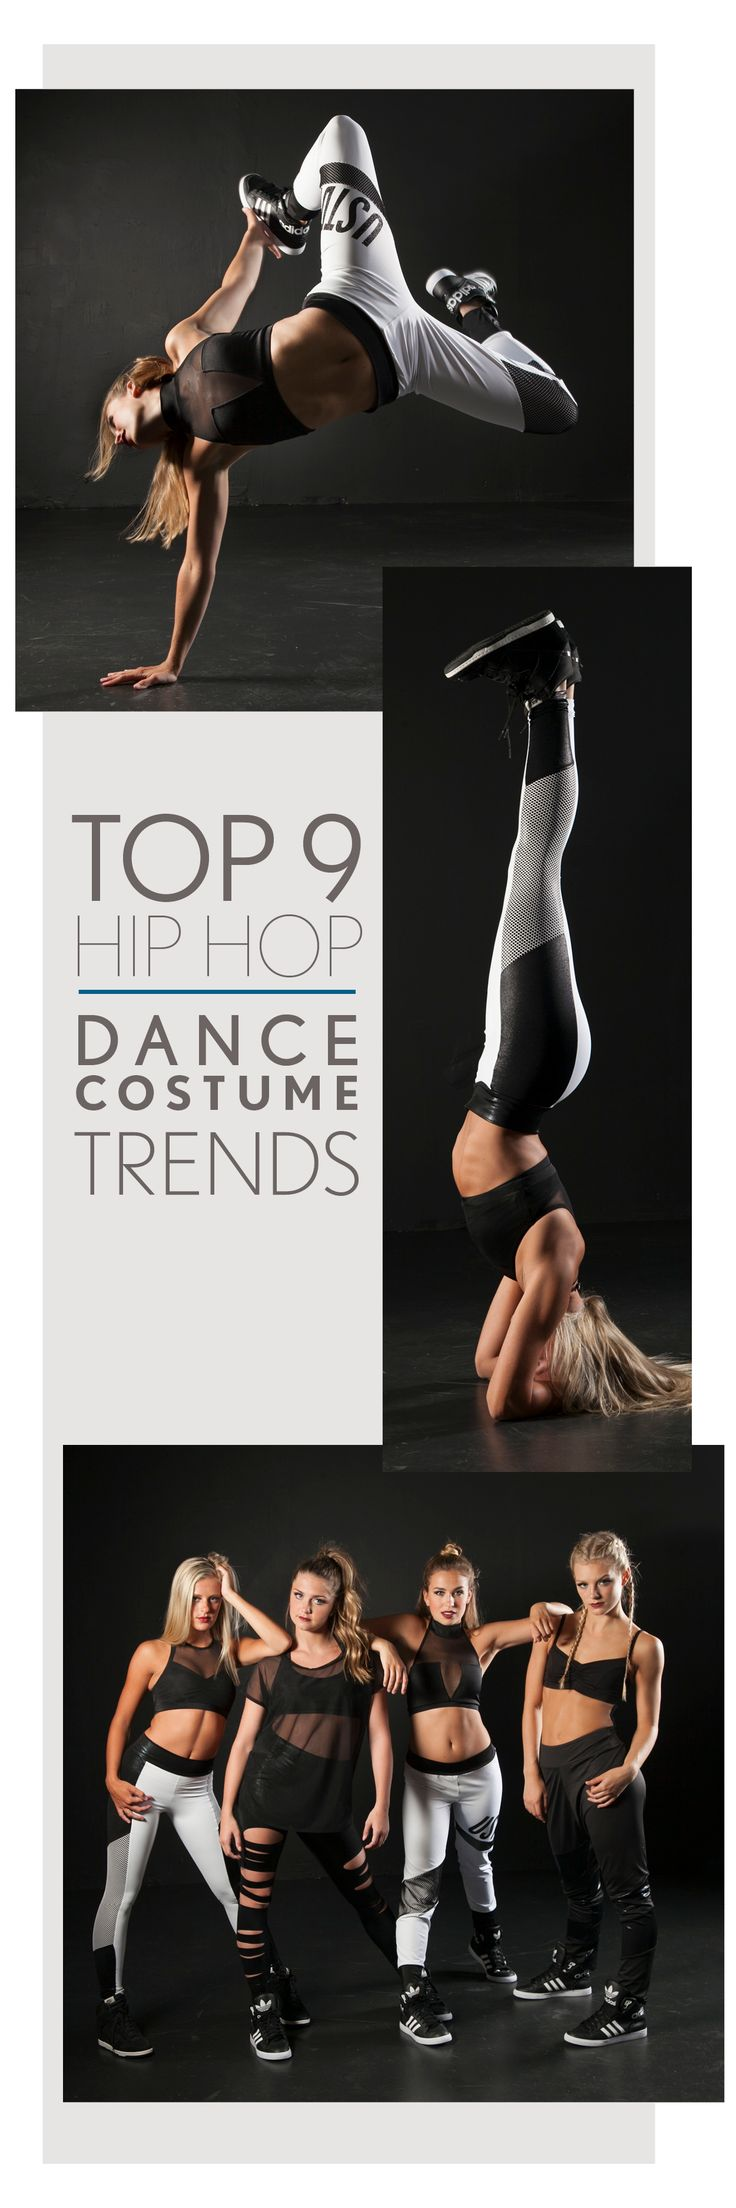 See what's trending in team hip hop dance!  Check out the Top 9 Hip Hop Dance Costume Trends on The Line Up's blog: